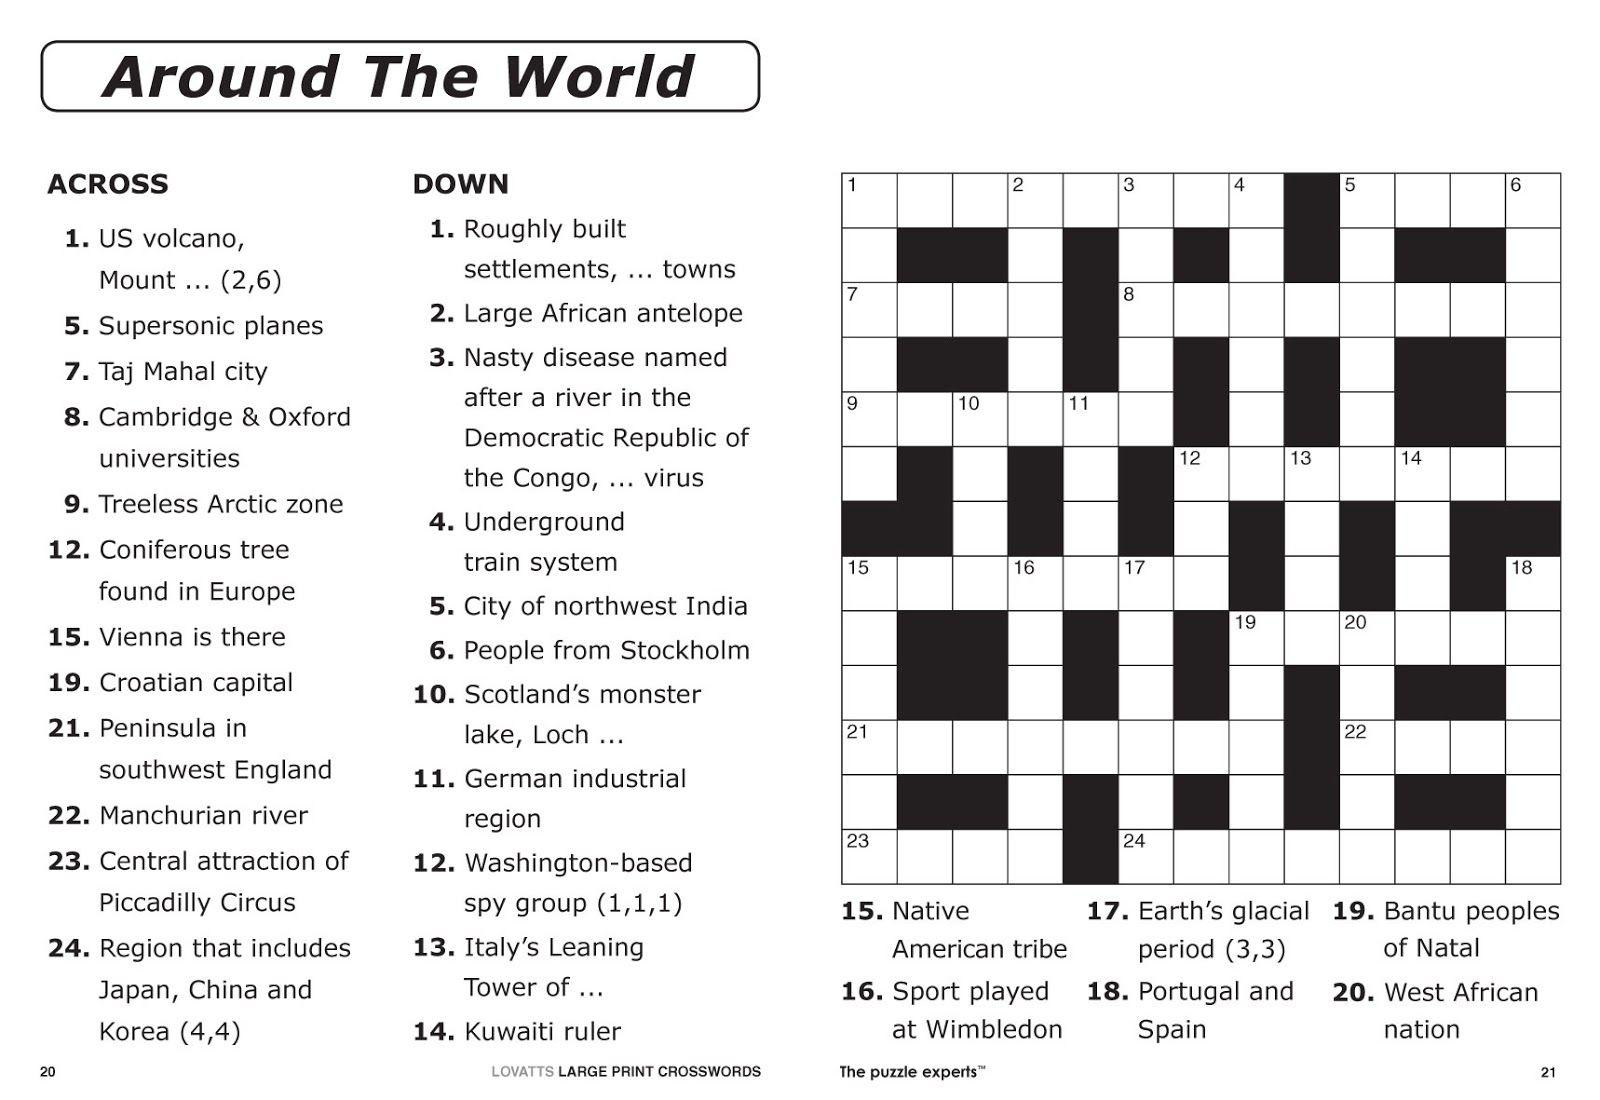 Free Printable Large Print Crossword Puzzles | M3U8 - Free Printable Crossword Puzzles For Adults